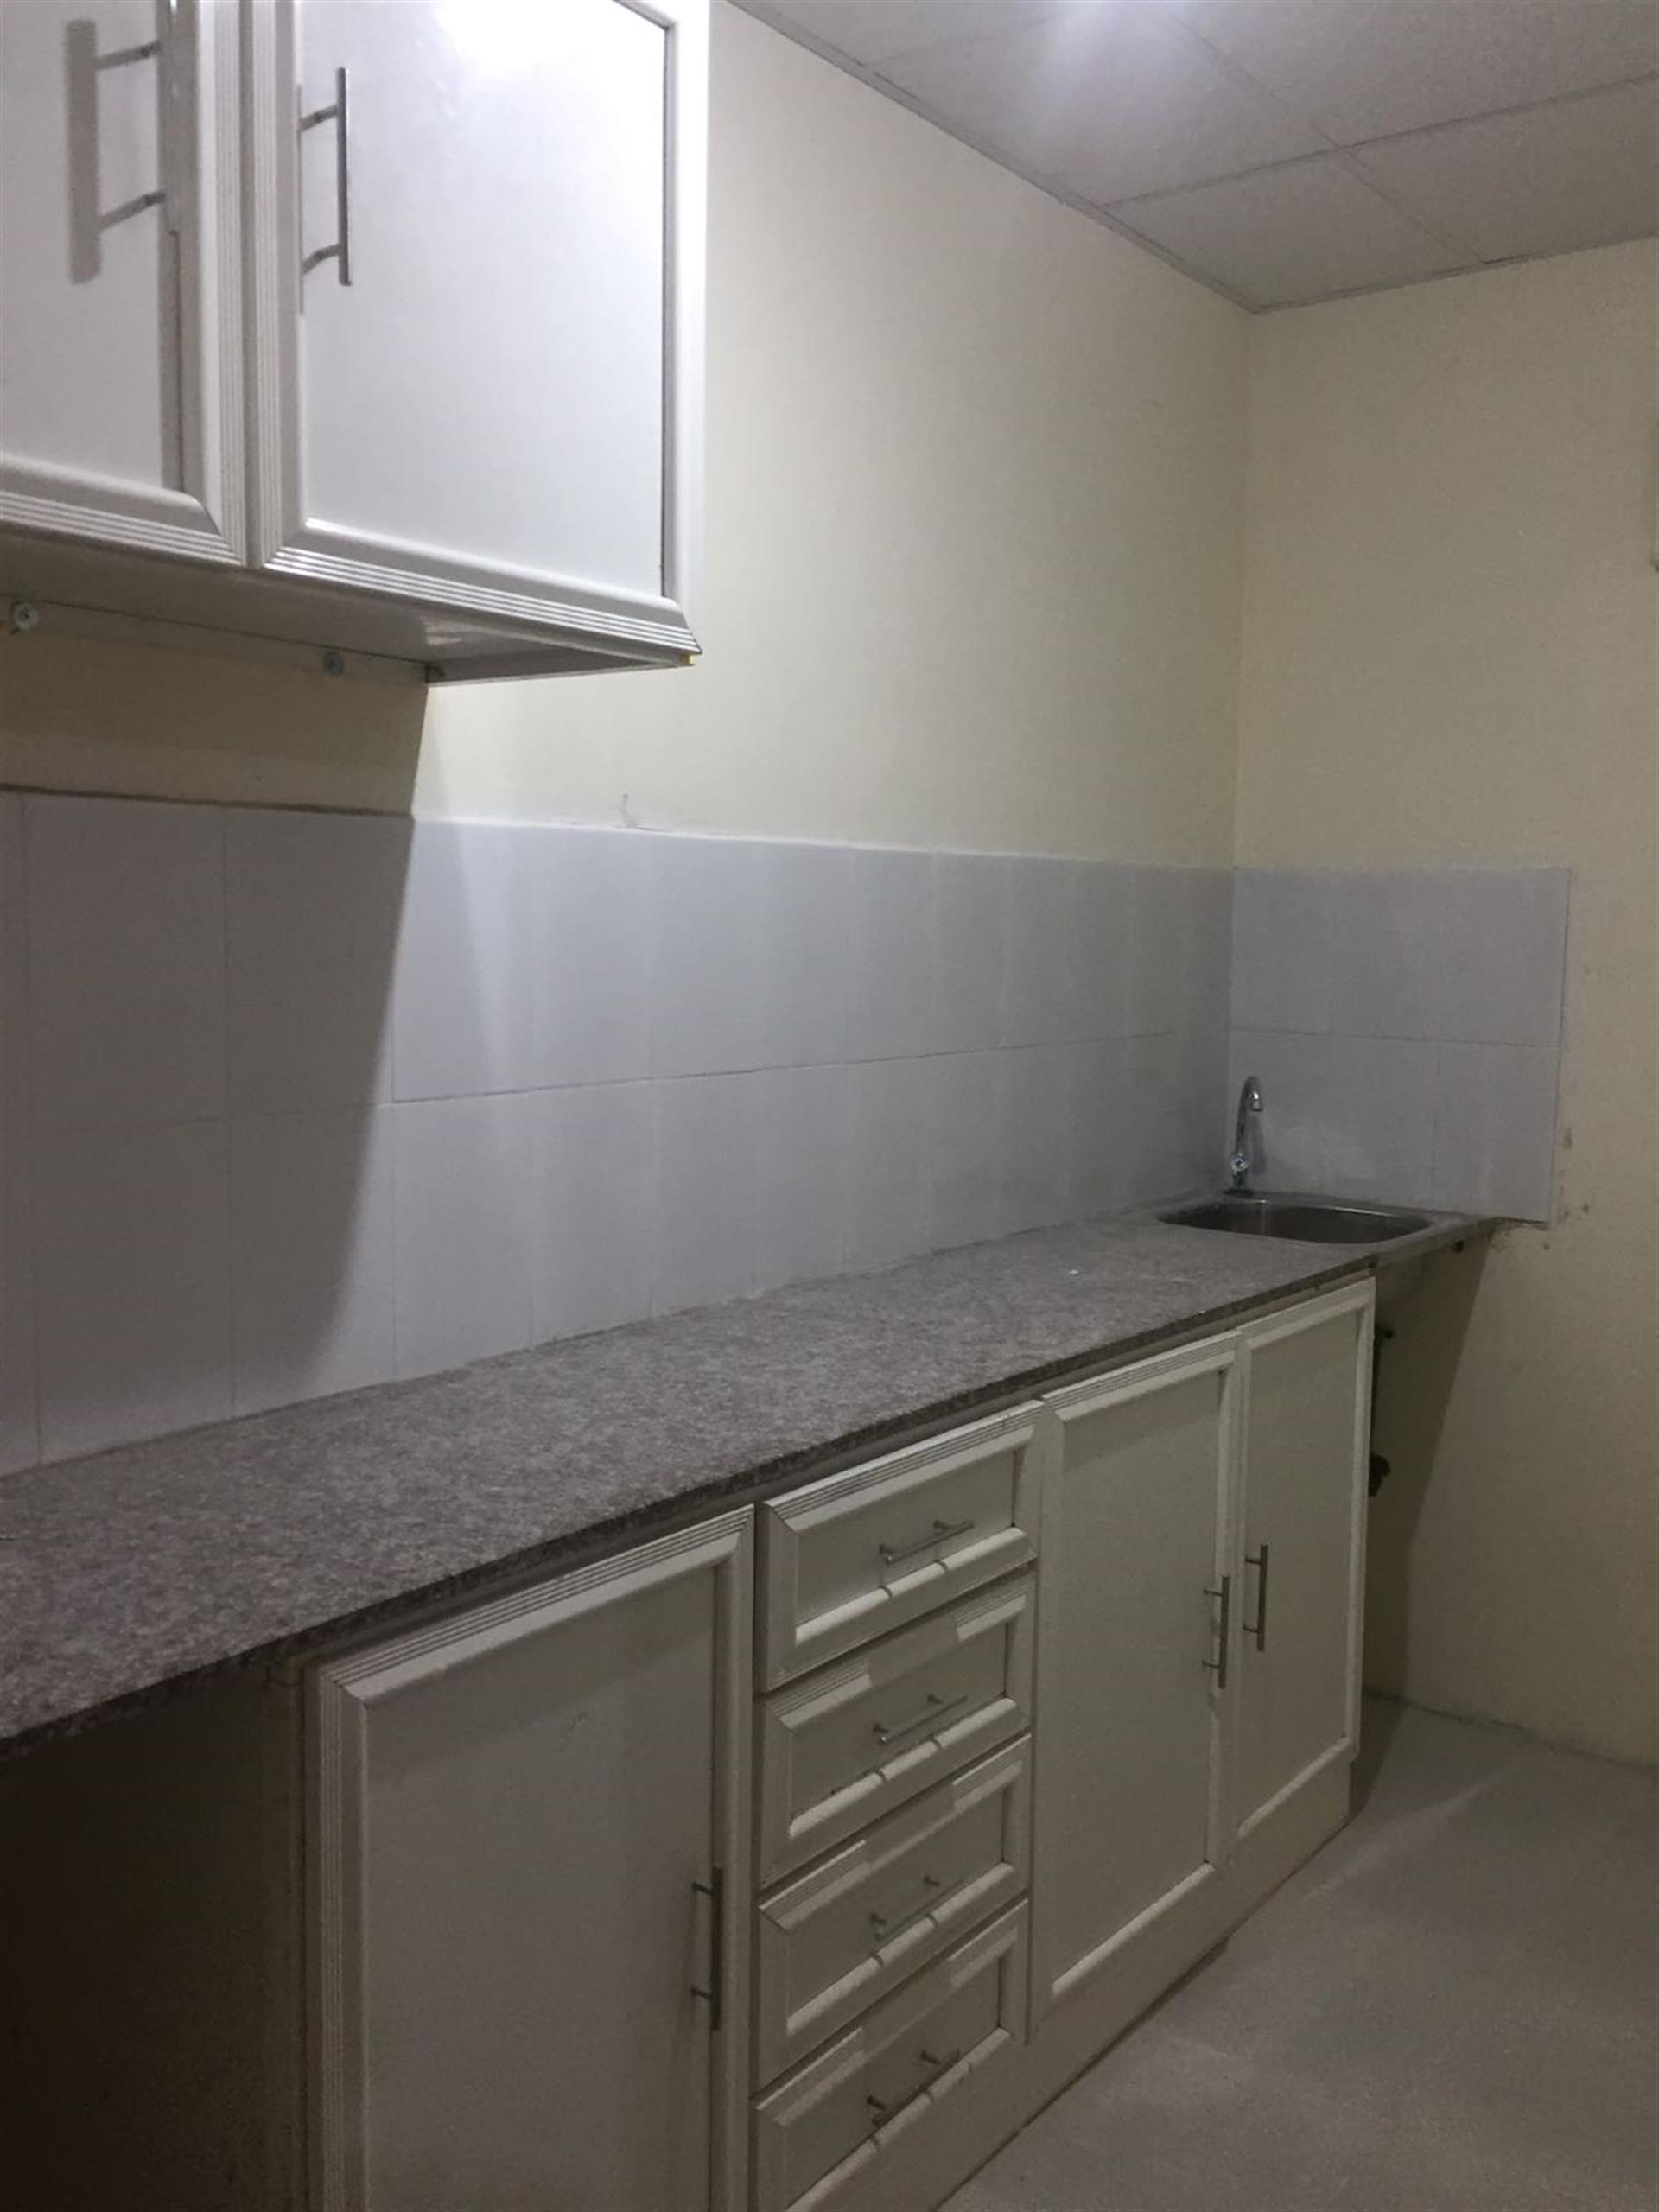 One Bedroom Kitchen Bathroom Available Near Gulf Times C Ring Road